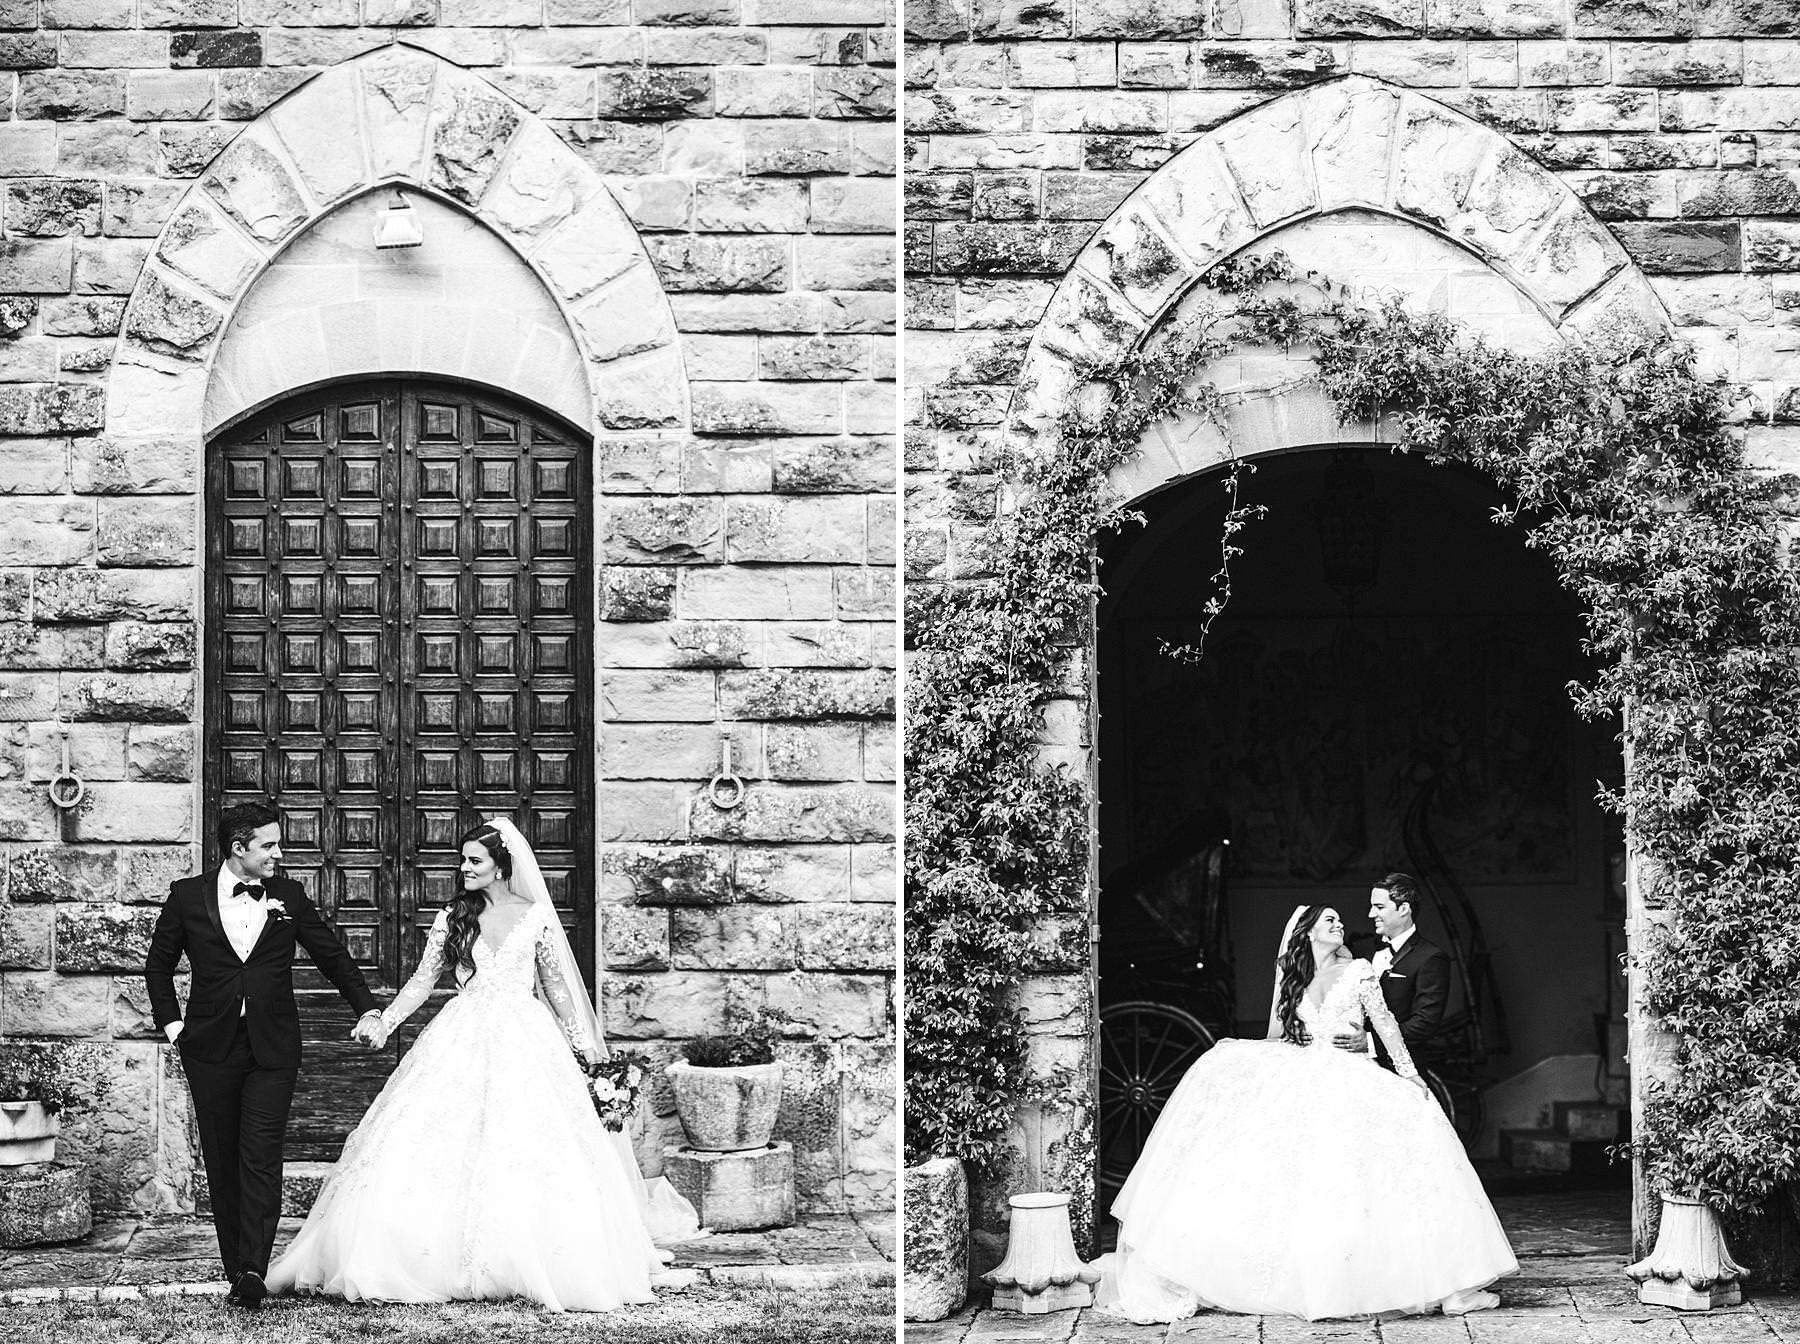 Castle destination wedding in Tuscany countryside at Valenzano near Arezzo